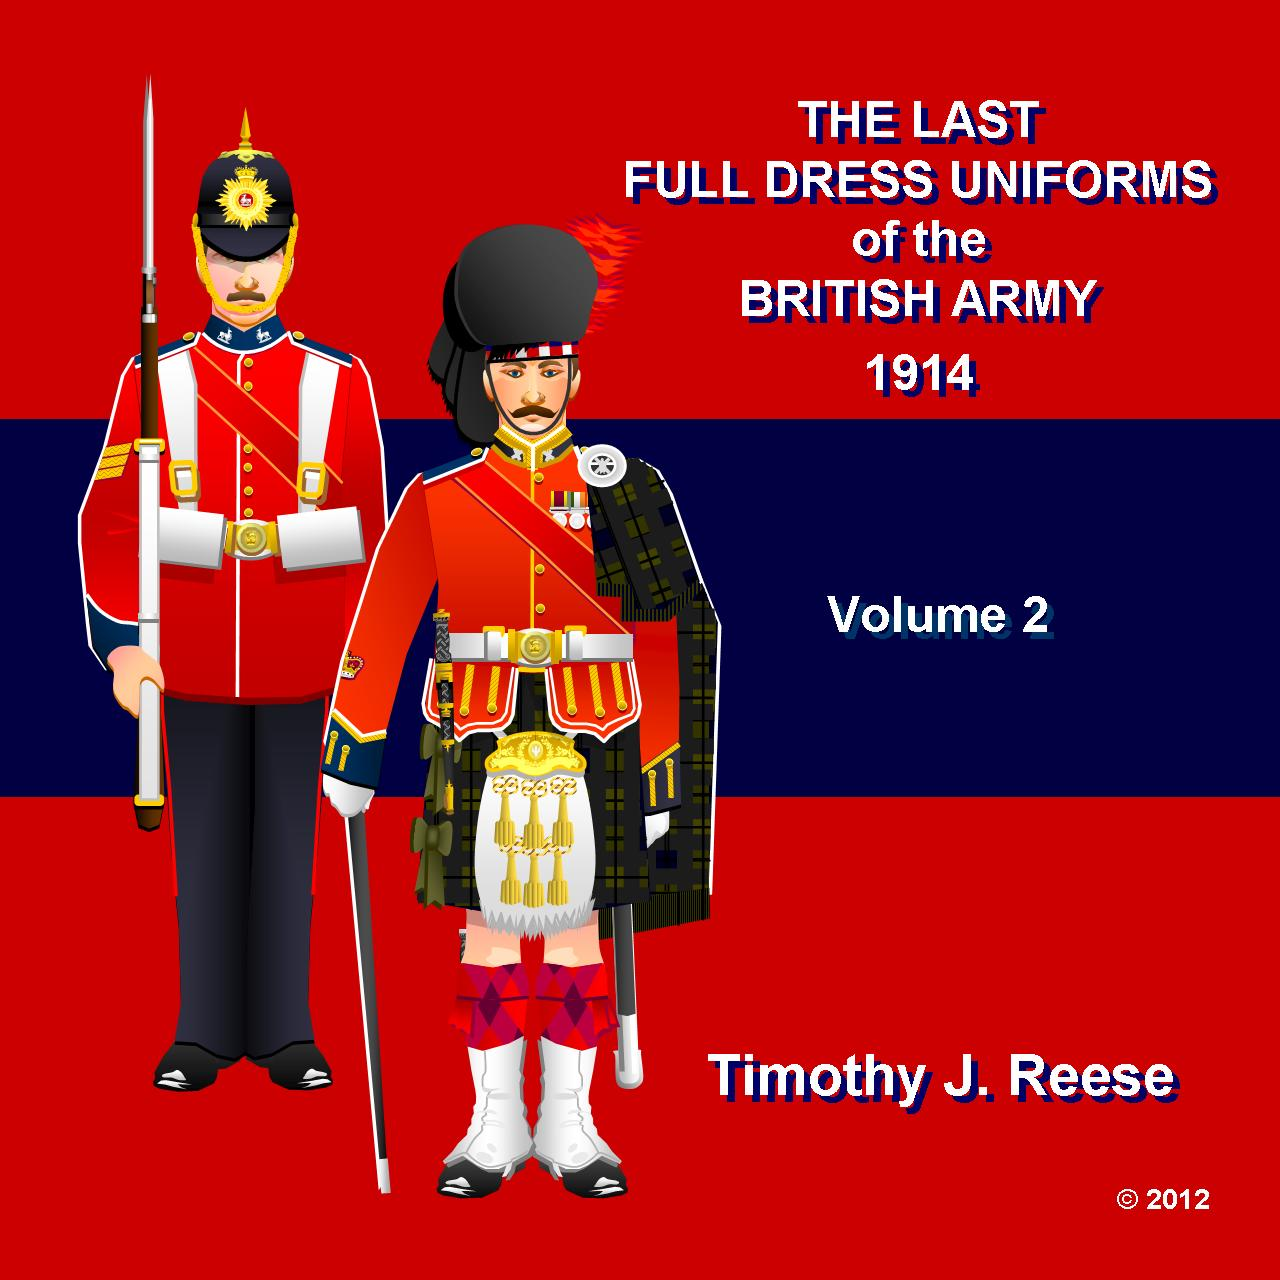 SAMPLE PLATE: The Last Full Dress Uniforms of the British Army, 1914, Volume 2